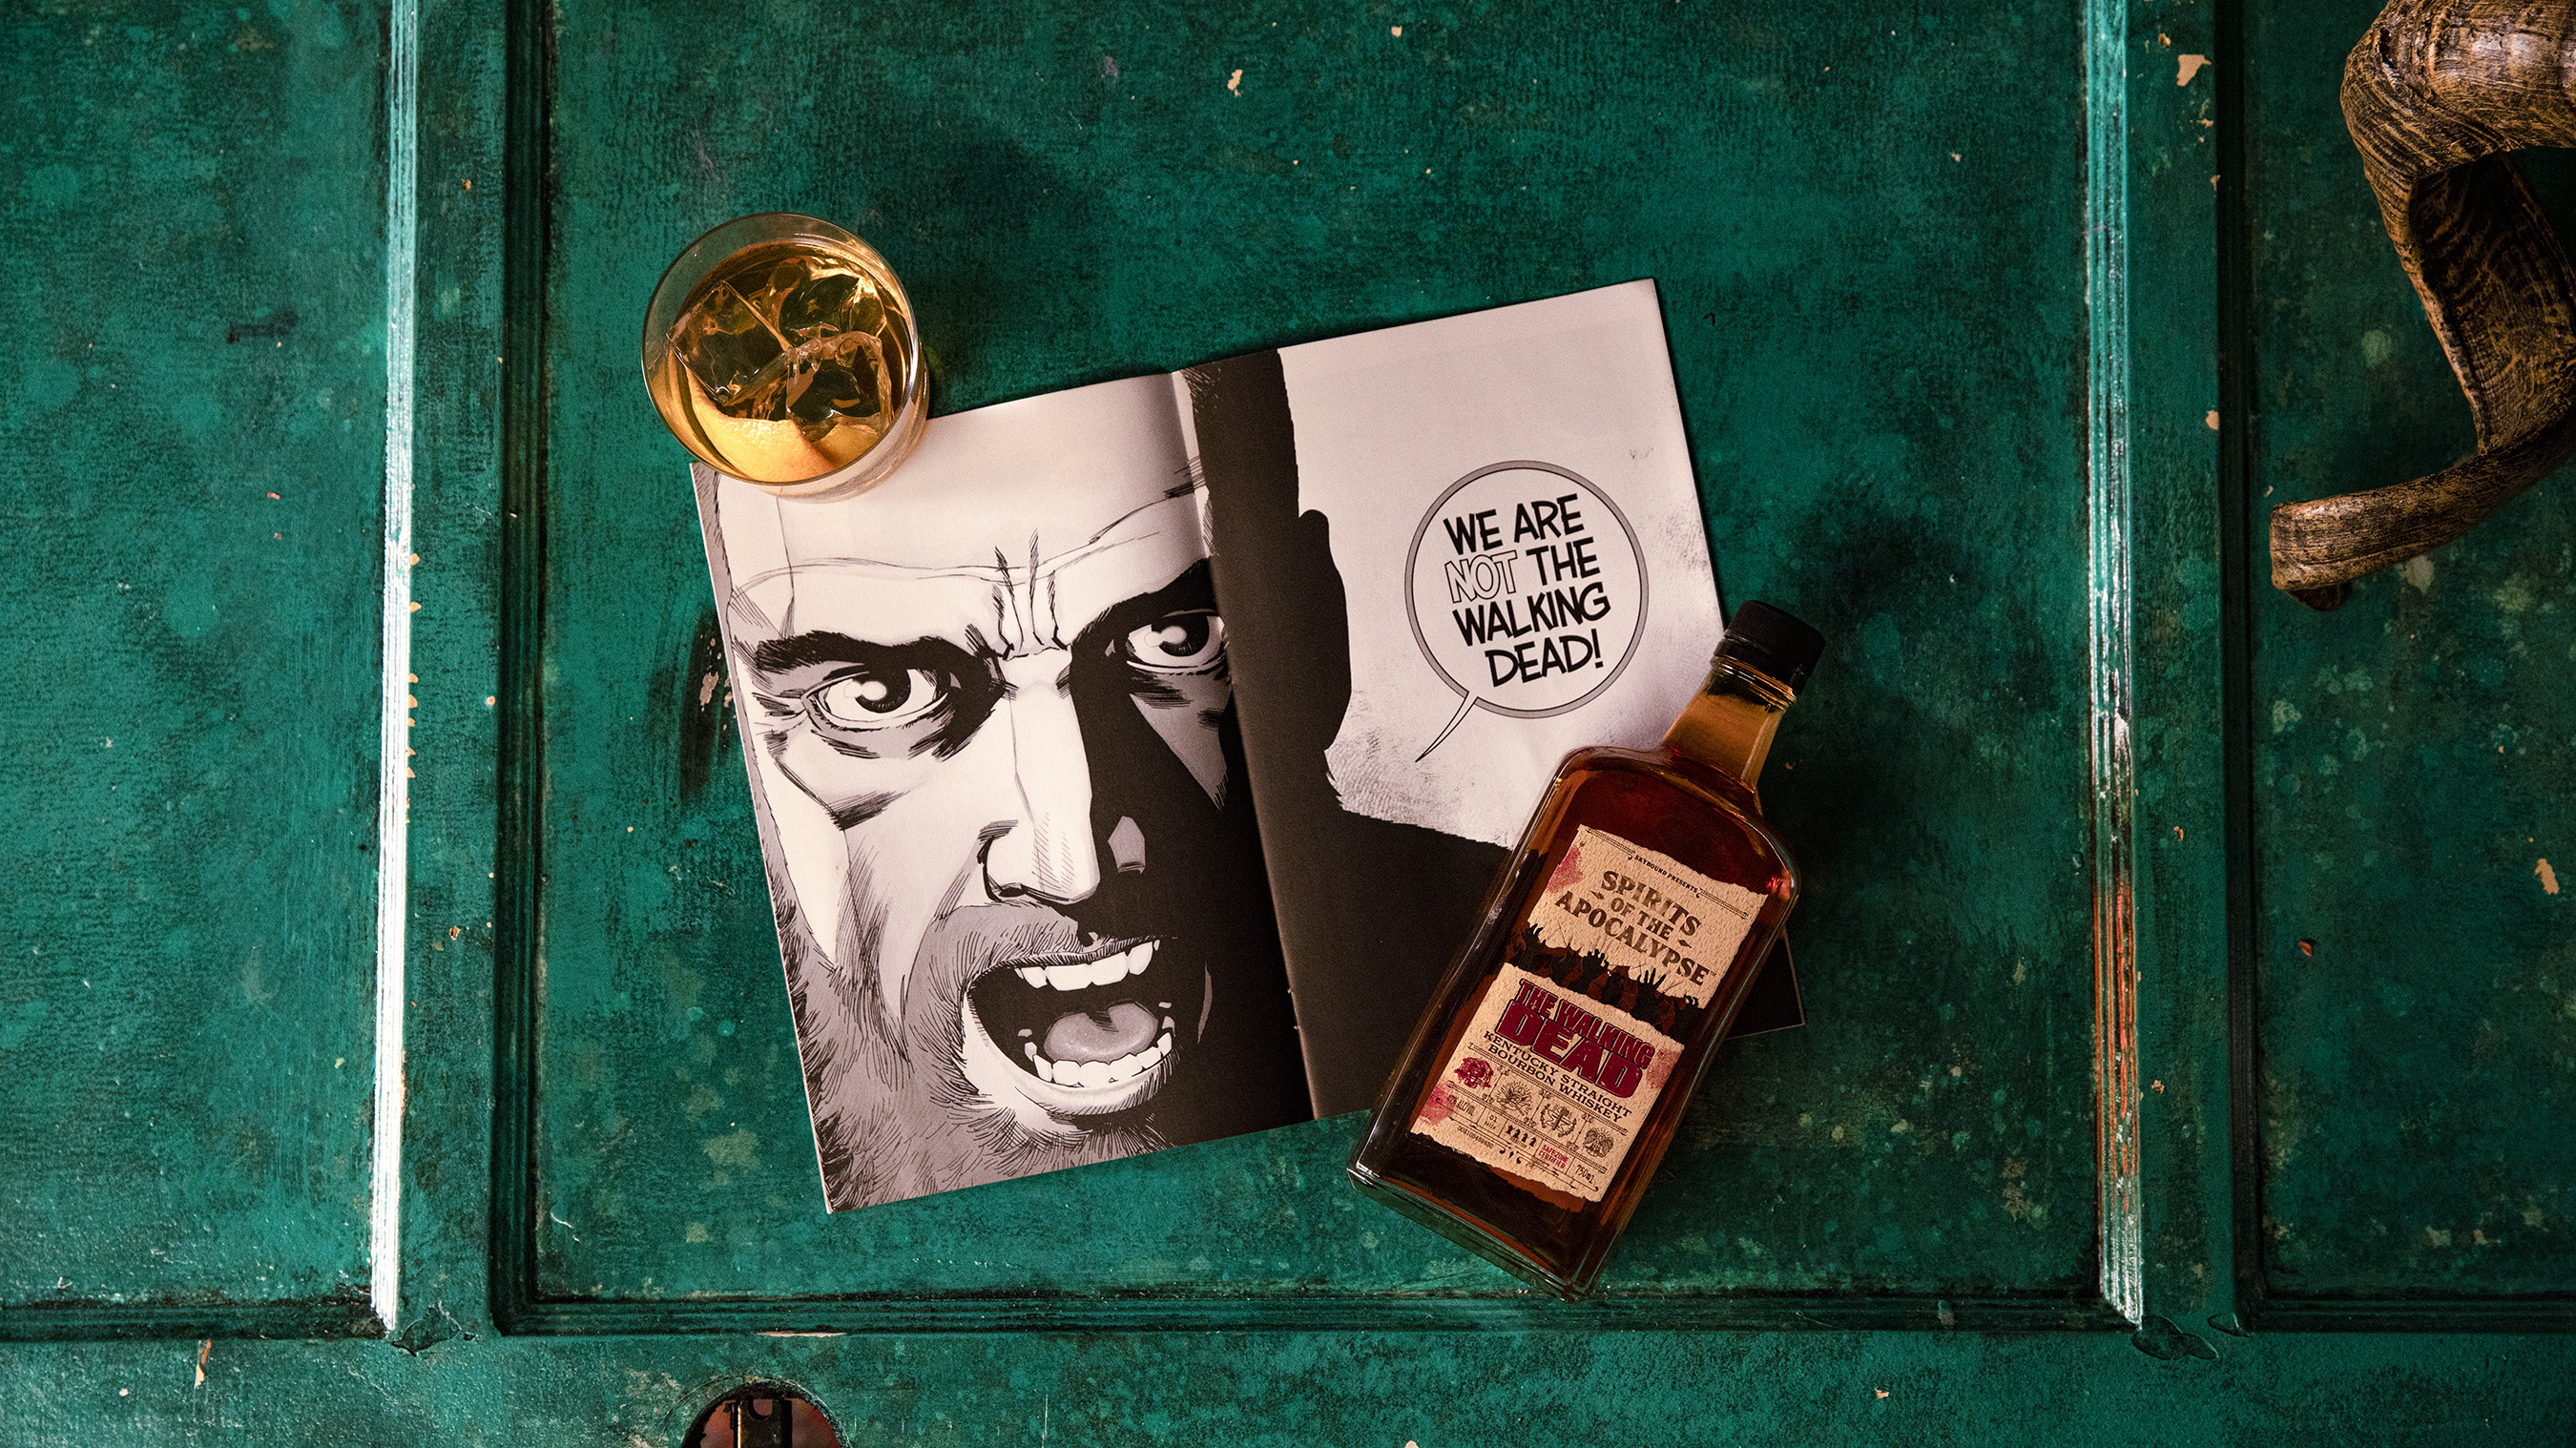 Old Man Rick, a featured signature cocktail with the limited edition bottle of The Walking Dead Kentucky Straight Bourbon Whiskey and #193.